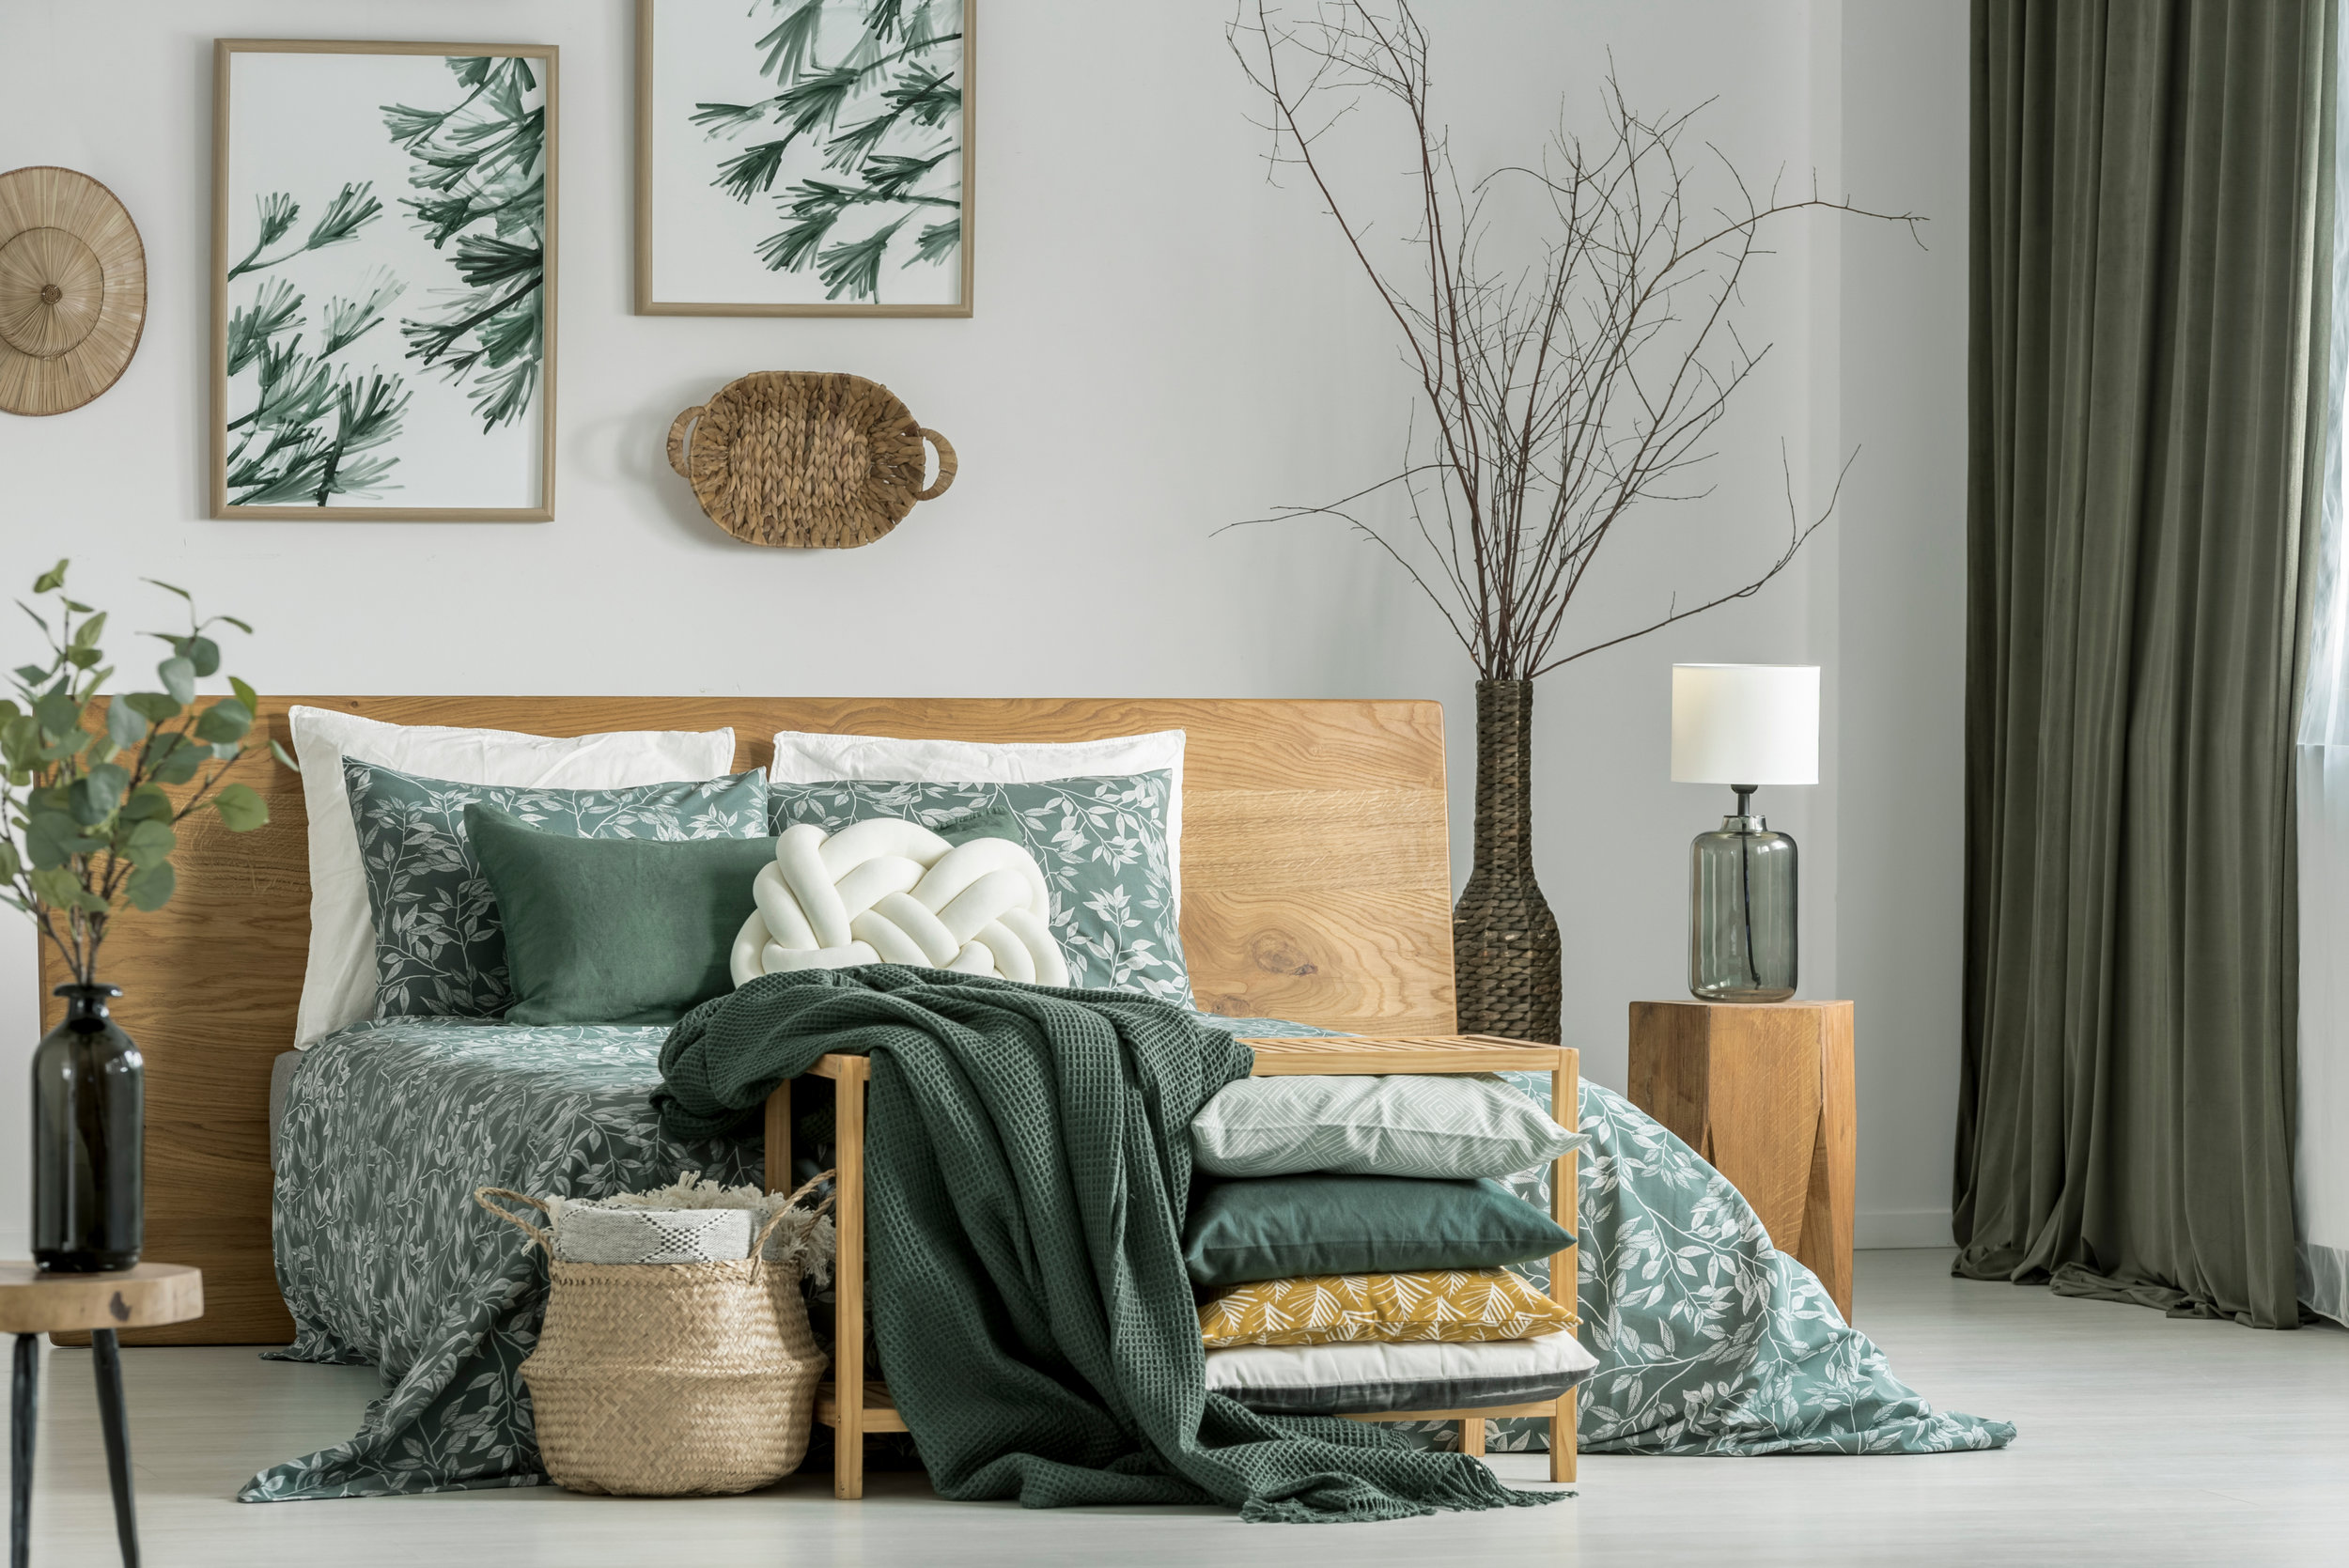 natural wood bed & table - Choosing a color palette for accents - pillows, bedding and other accent pieces, such as wall art and botanicals is a fun and interesting way to freshen up your room decor.